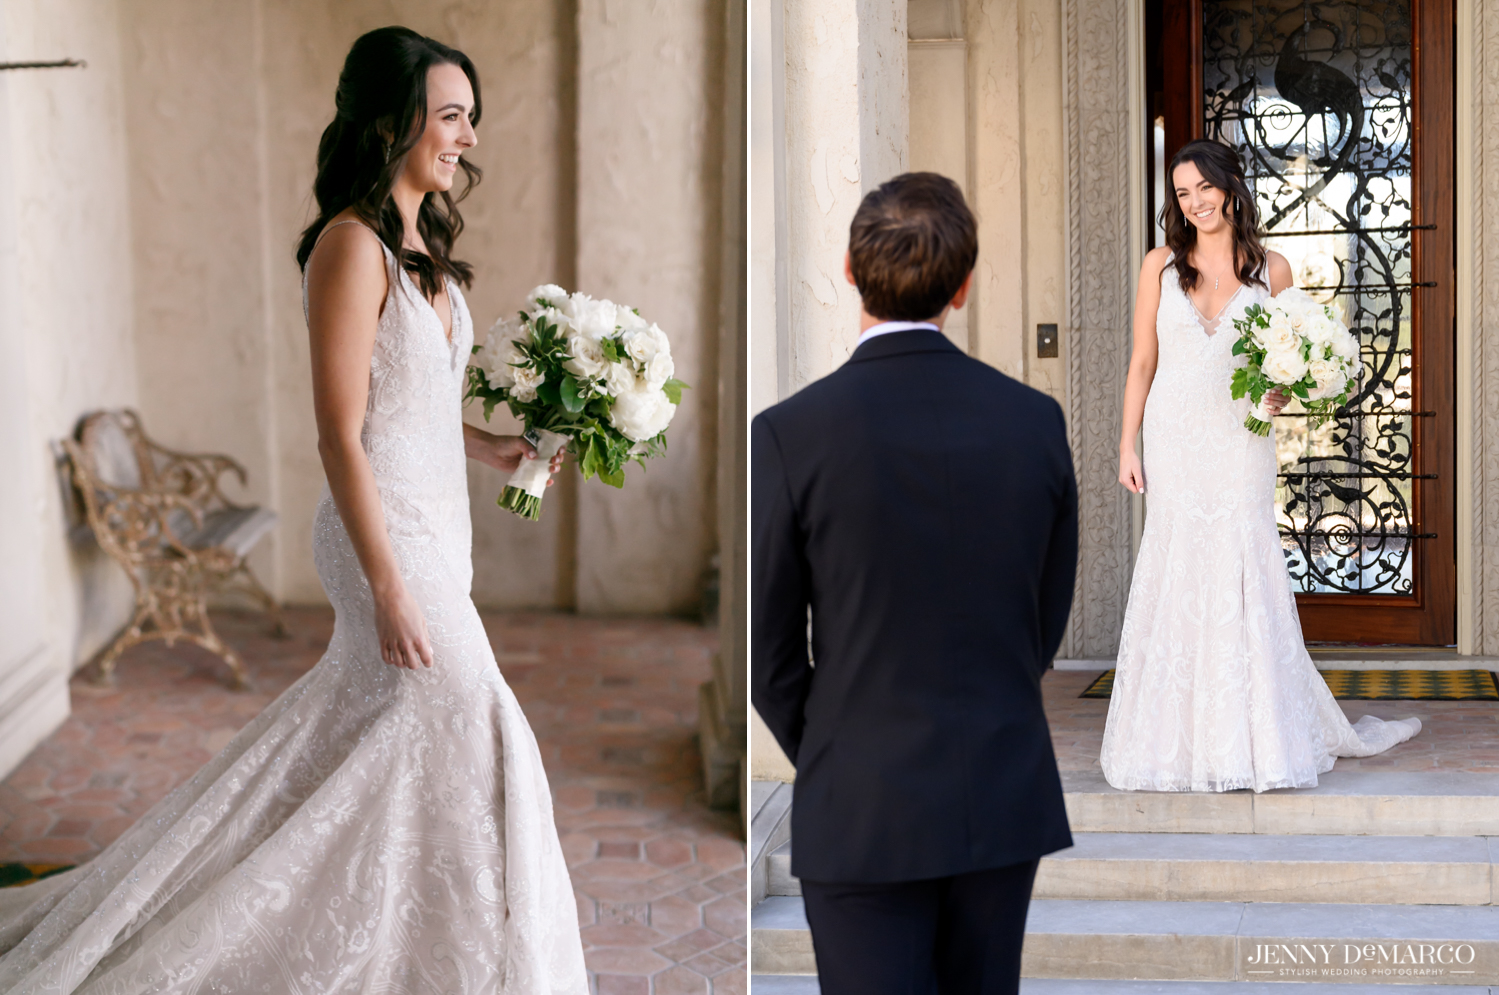 bride holding her white floral bouquet and bride walking out to see her groom for the first time